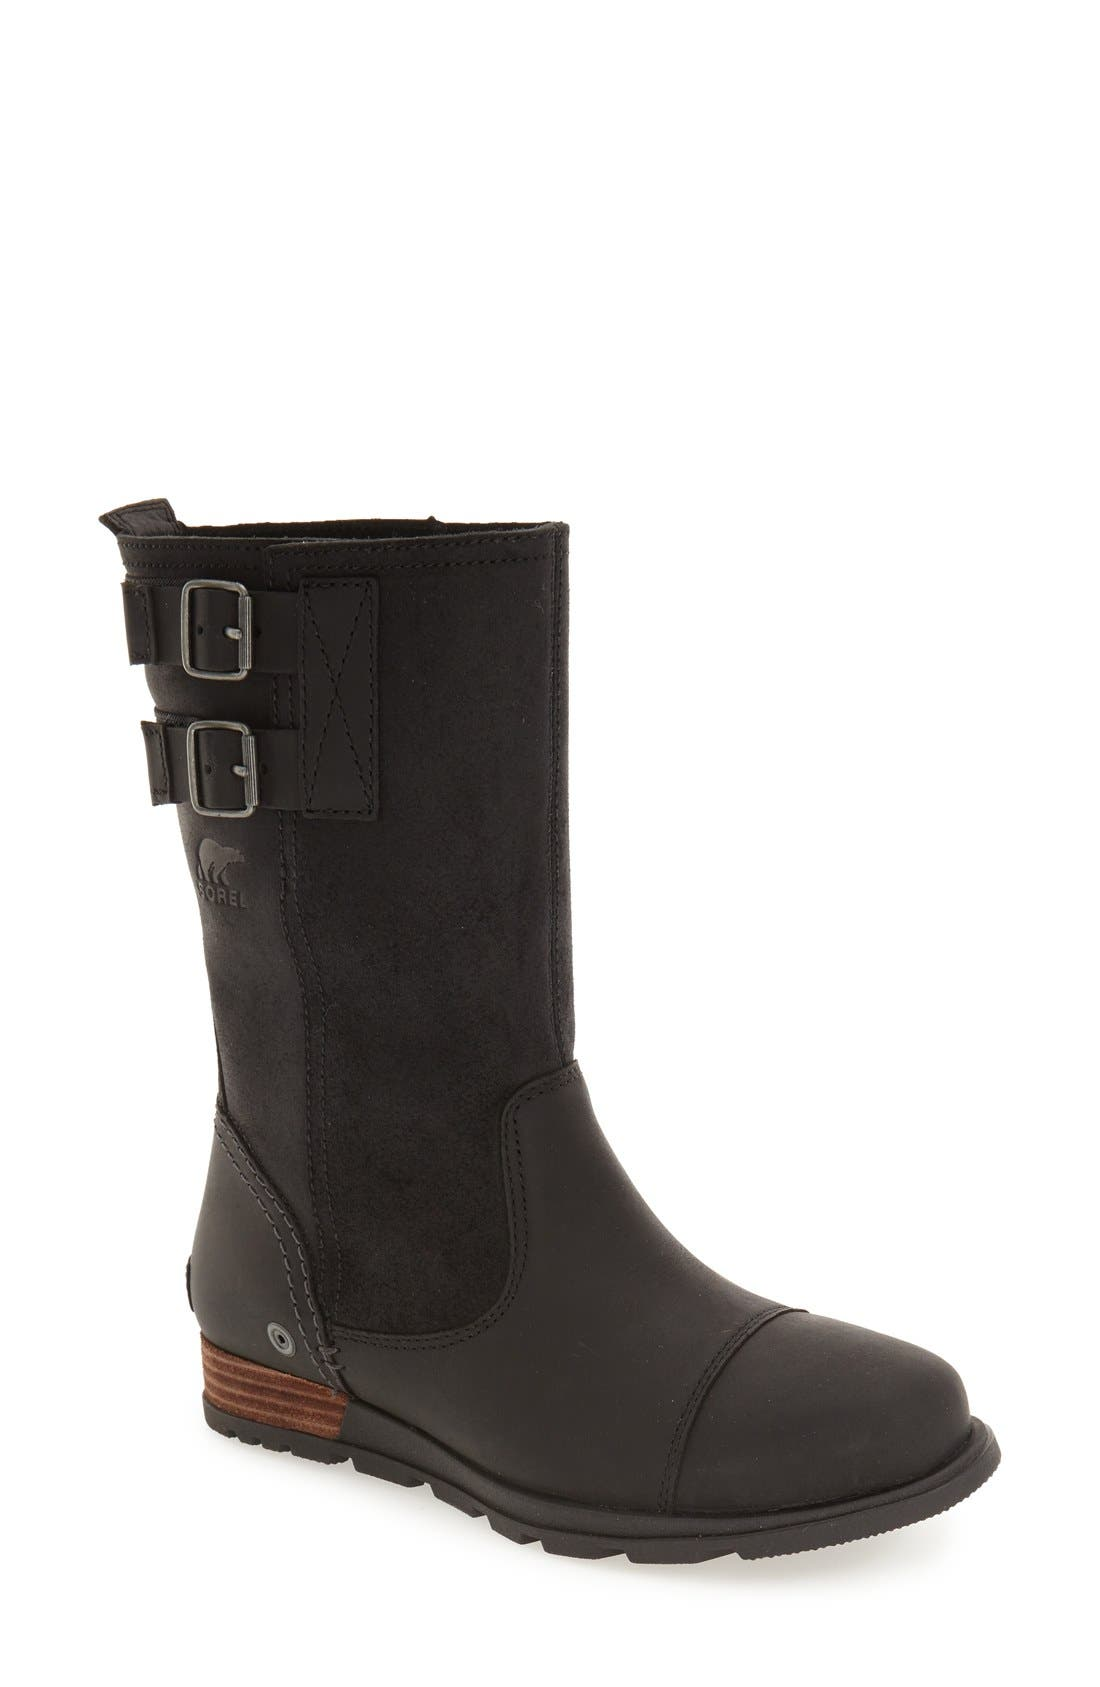 Main Image - SOREL 'Major' Boot (Women)